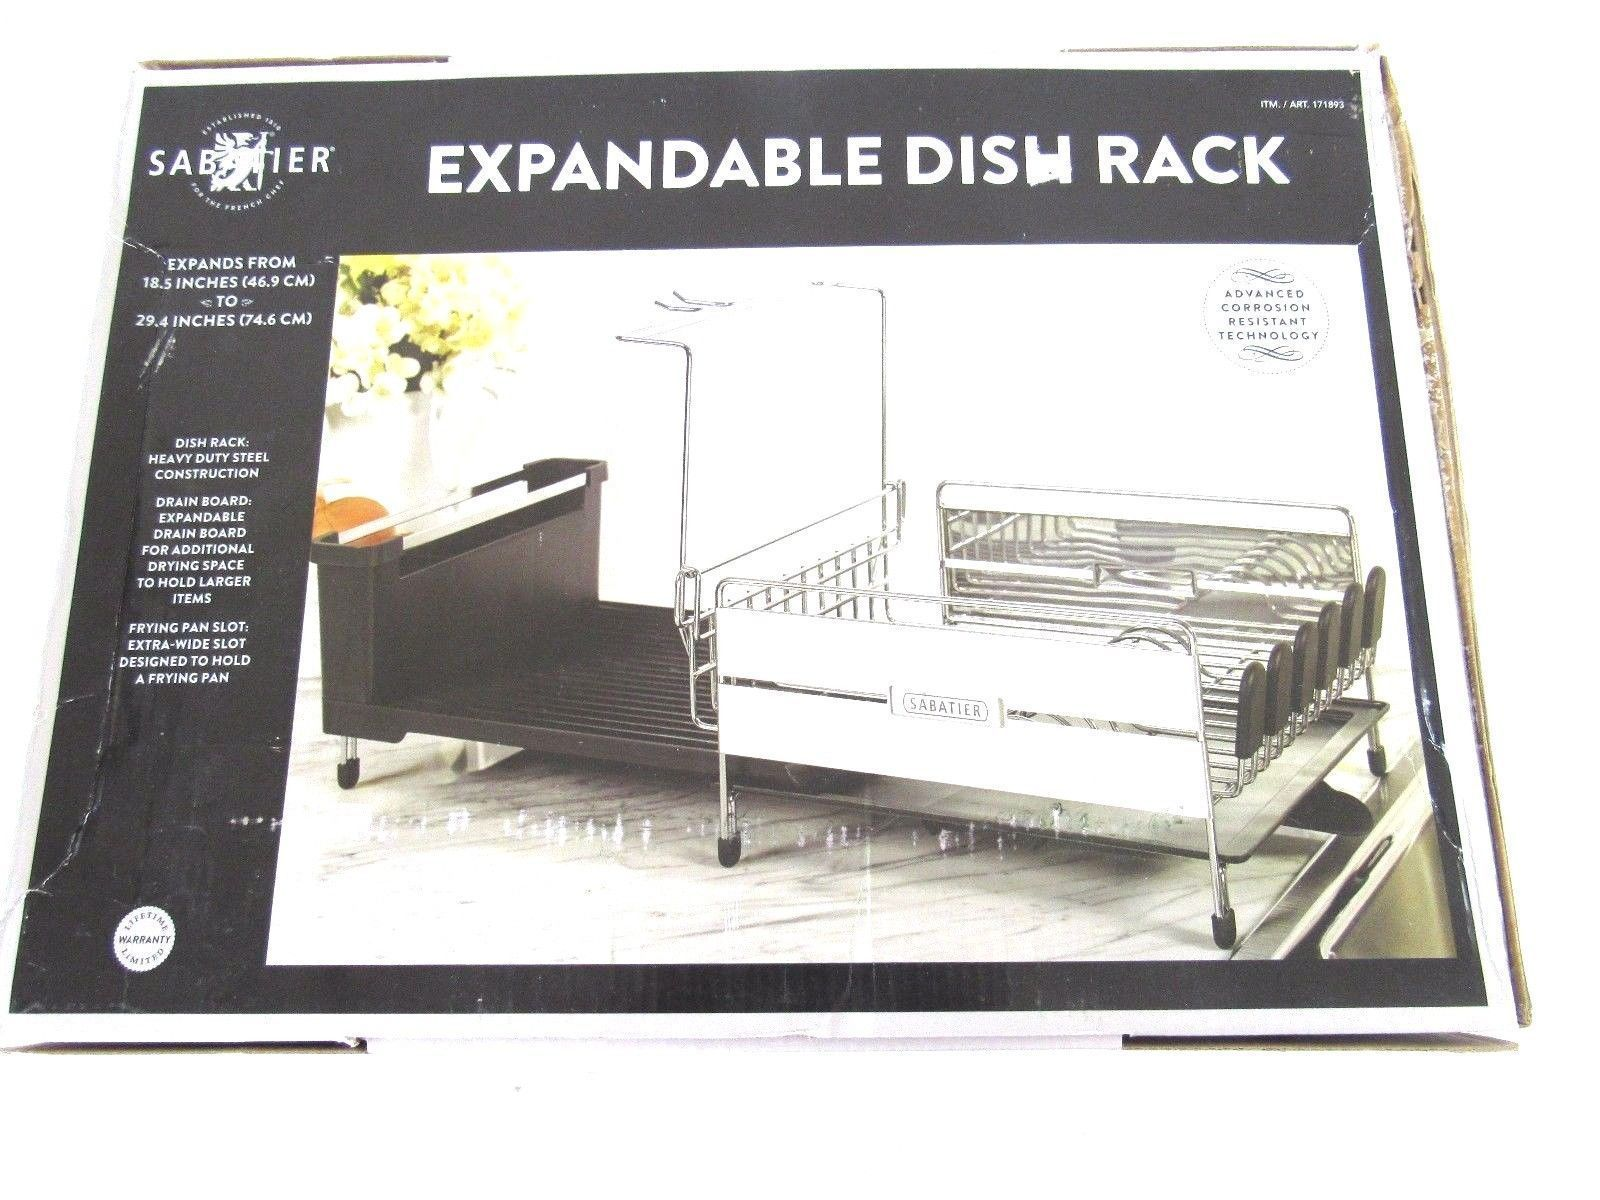 "Sabatier Dish Rack Pleasing Sabatier Expandable Dish Drying Rack Expands From 185""  294 Decorating Design"